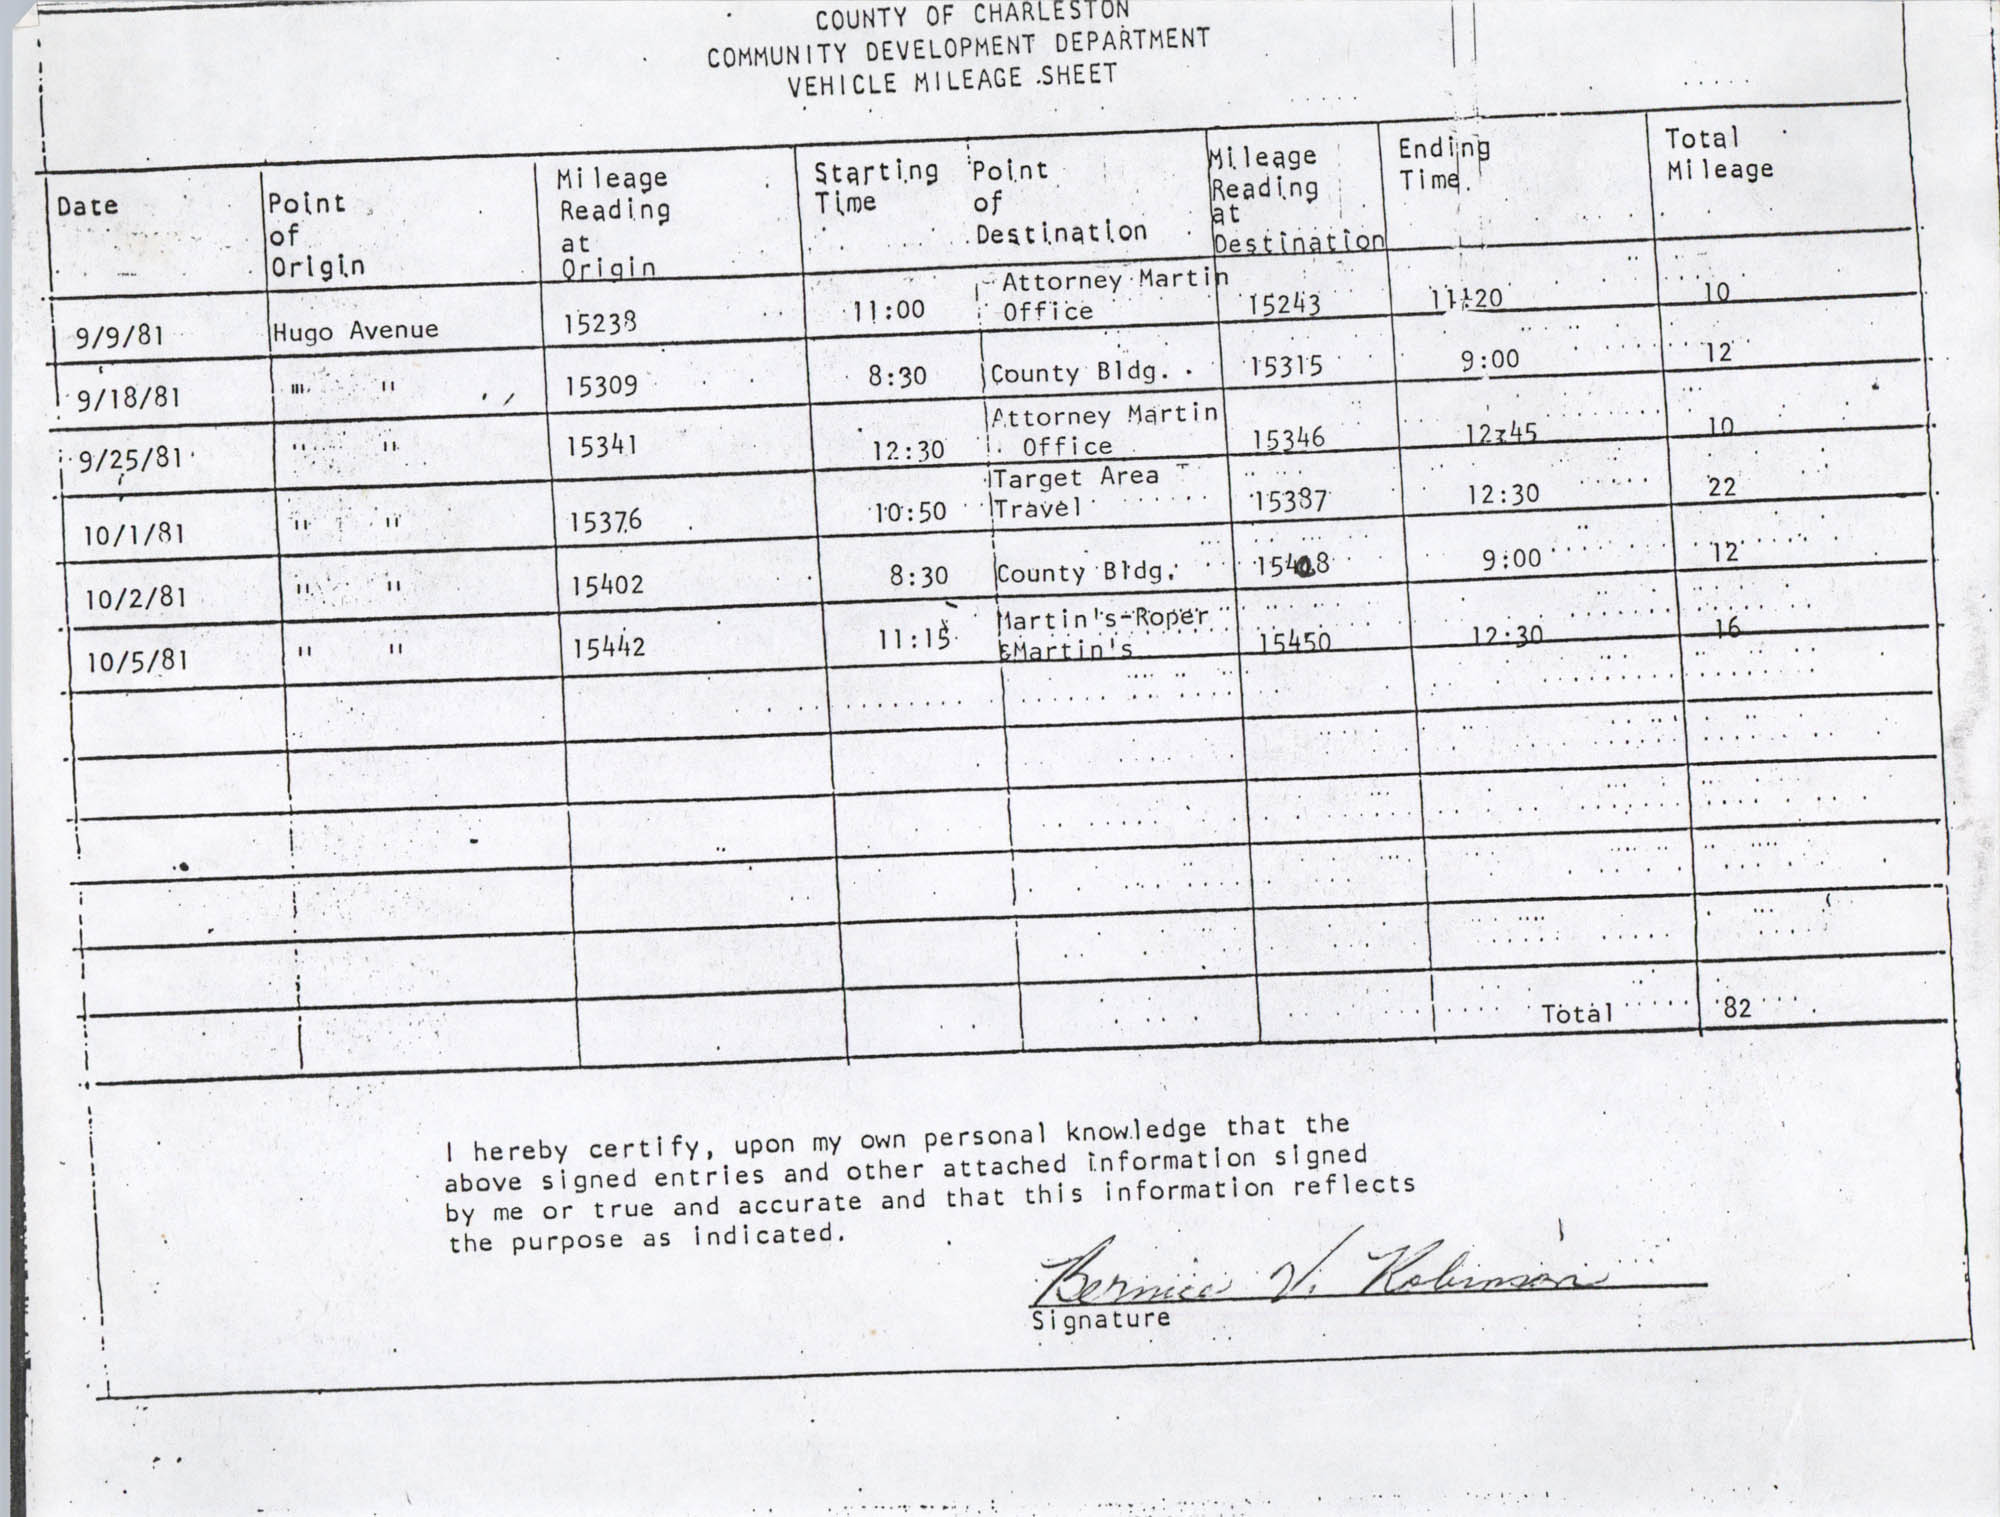 Community Development Department Vehicle Mileage Sheet, Page 12